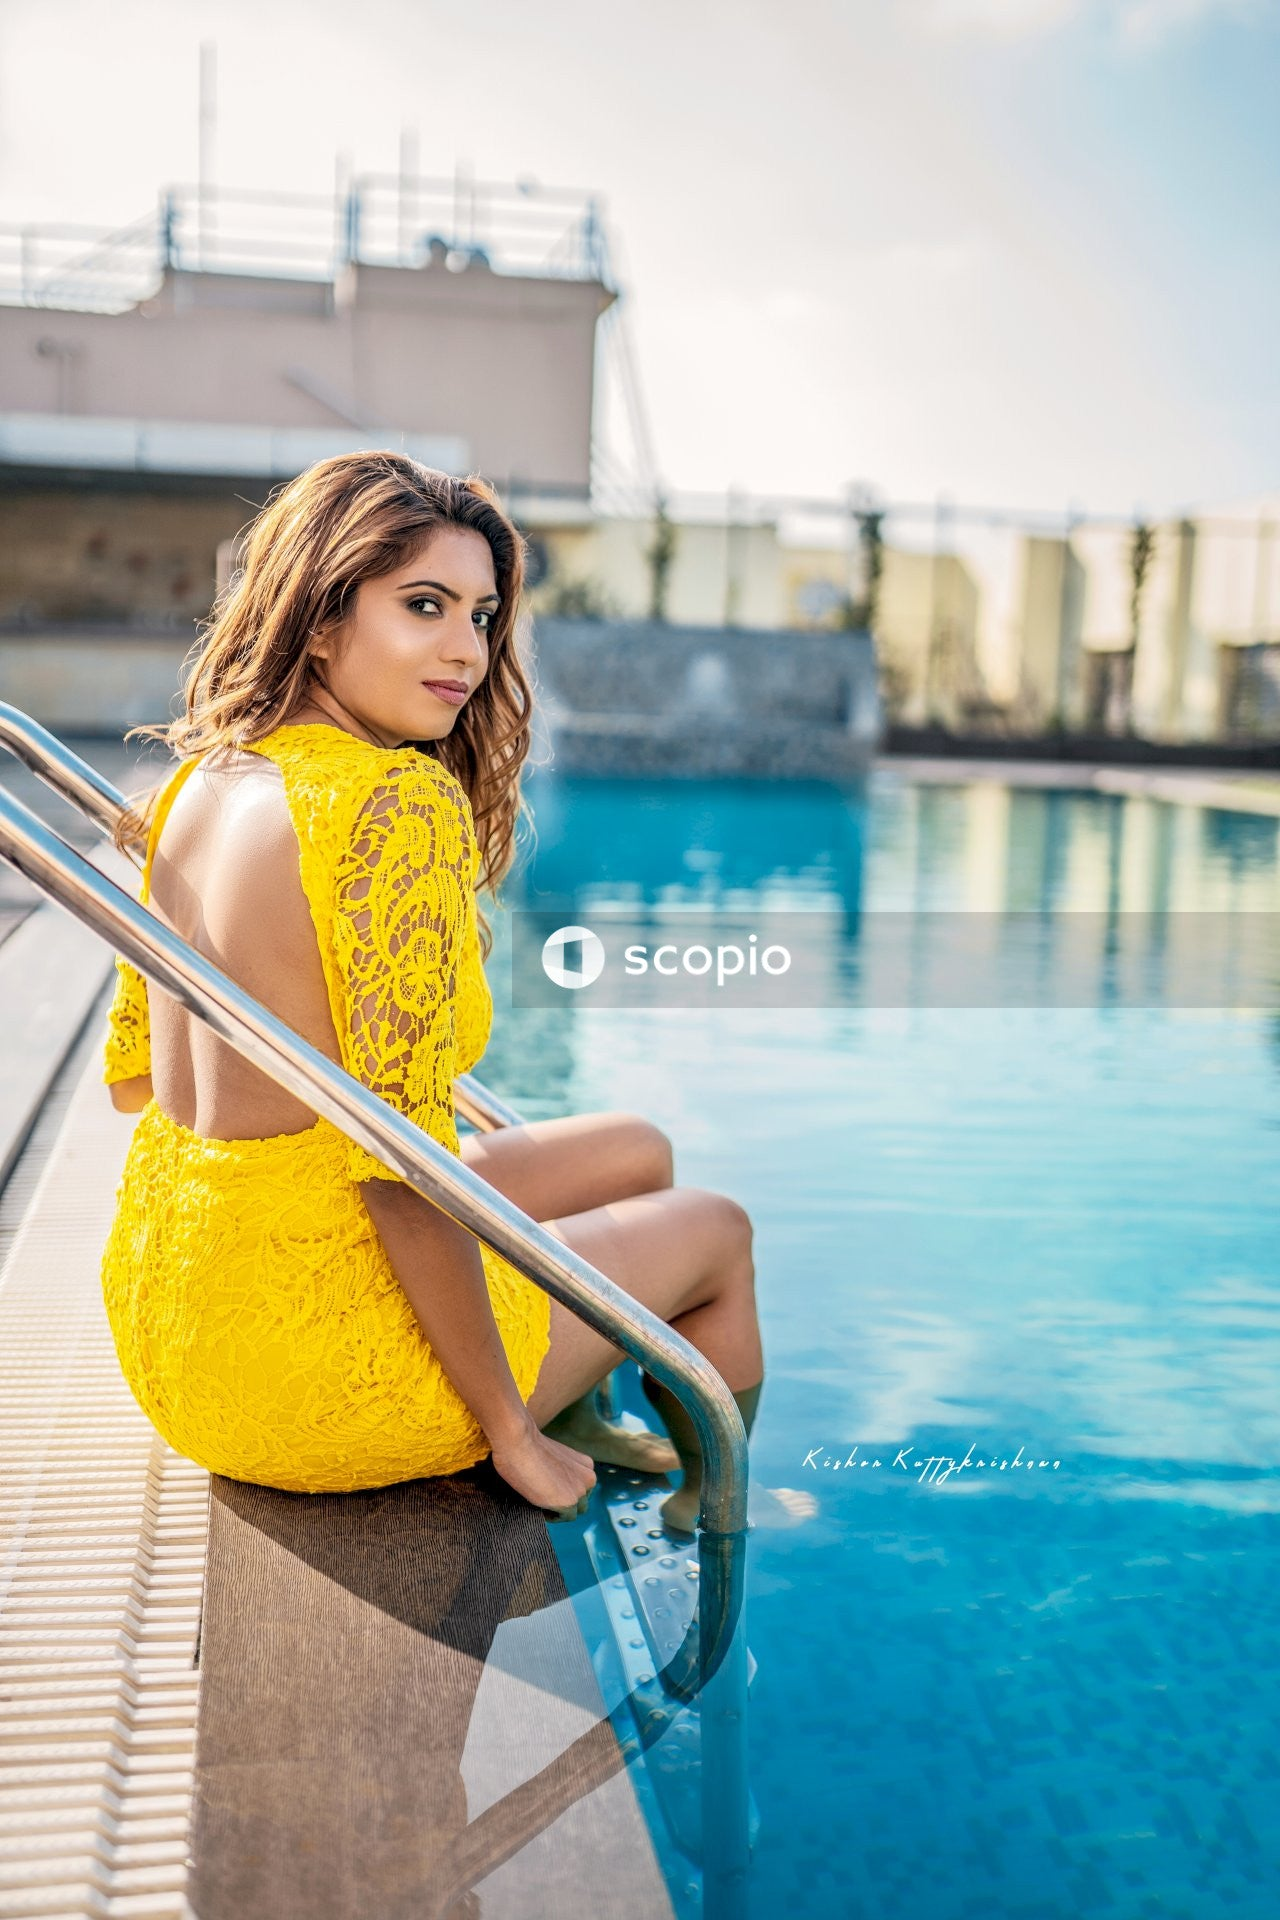 Woman in yellow dress sitting on pool ladder